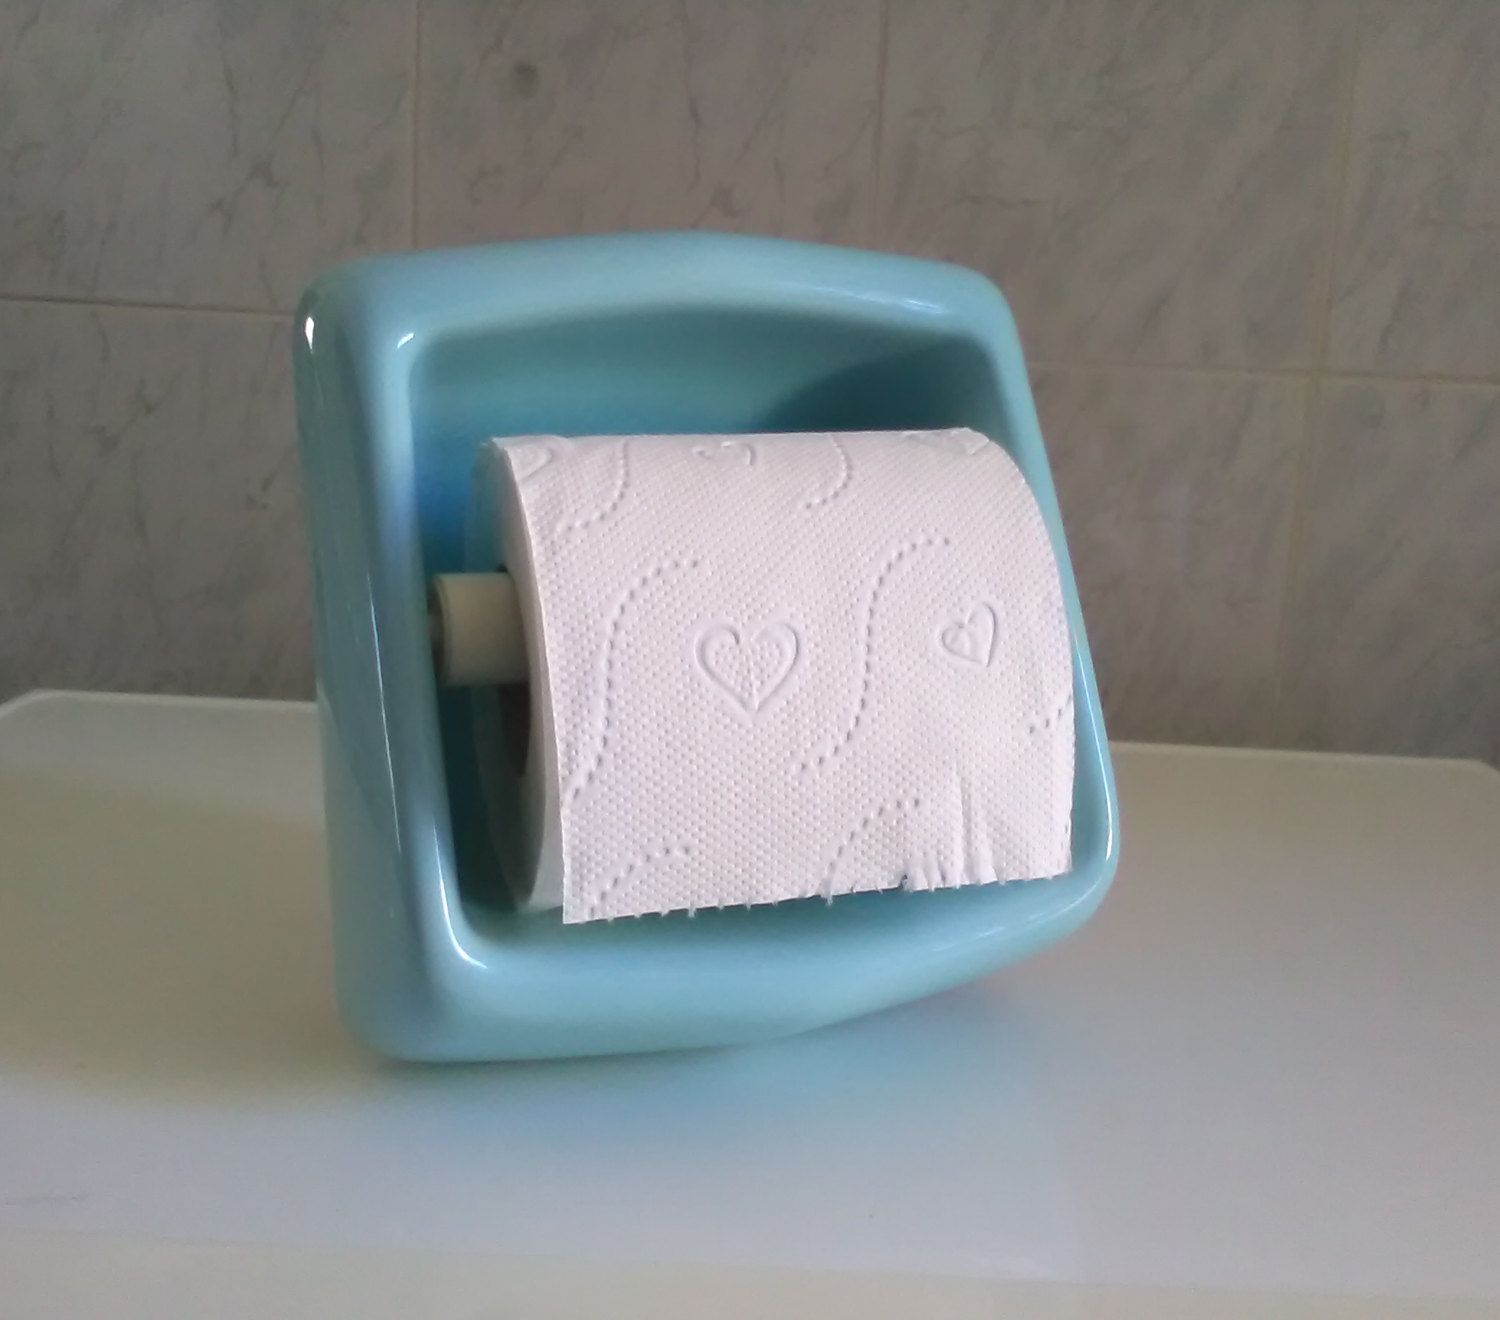 Antique Toilet Paper Dispenser Vintage Cyan Ceramic Toilet Paper Holder Bathroom